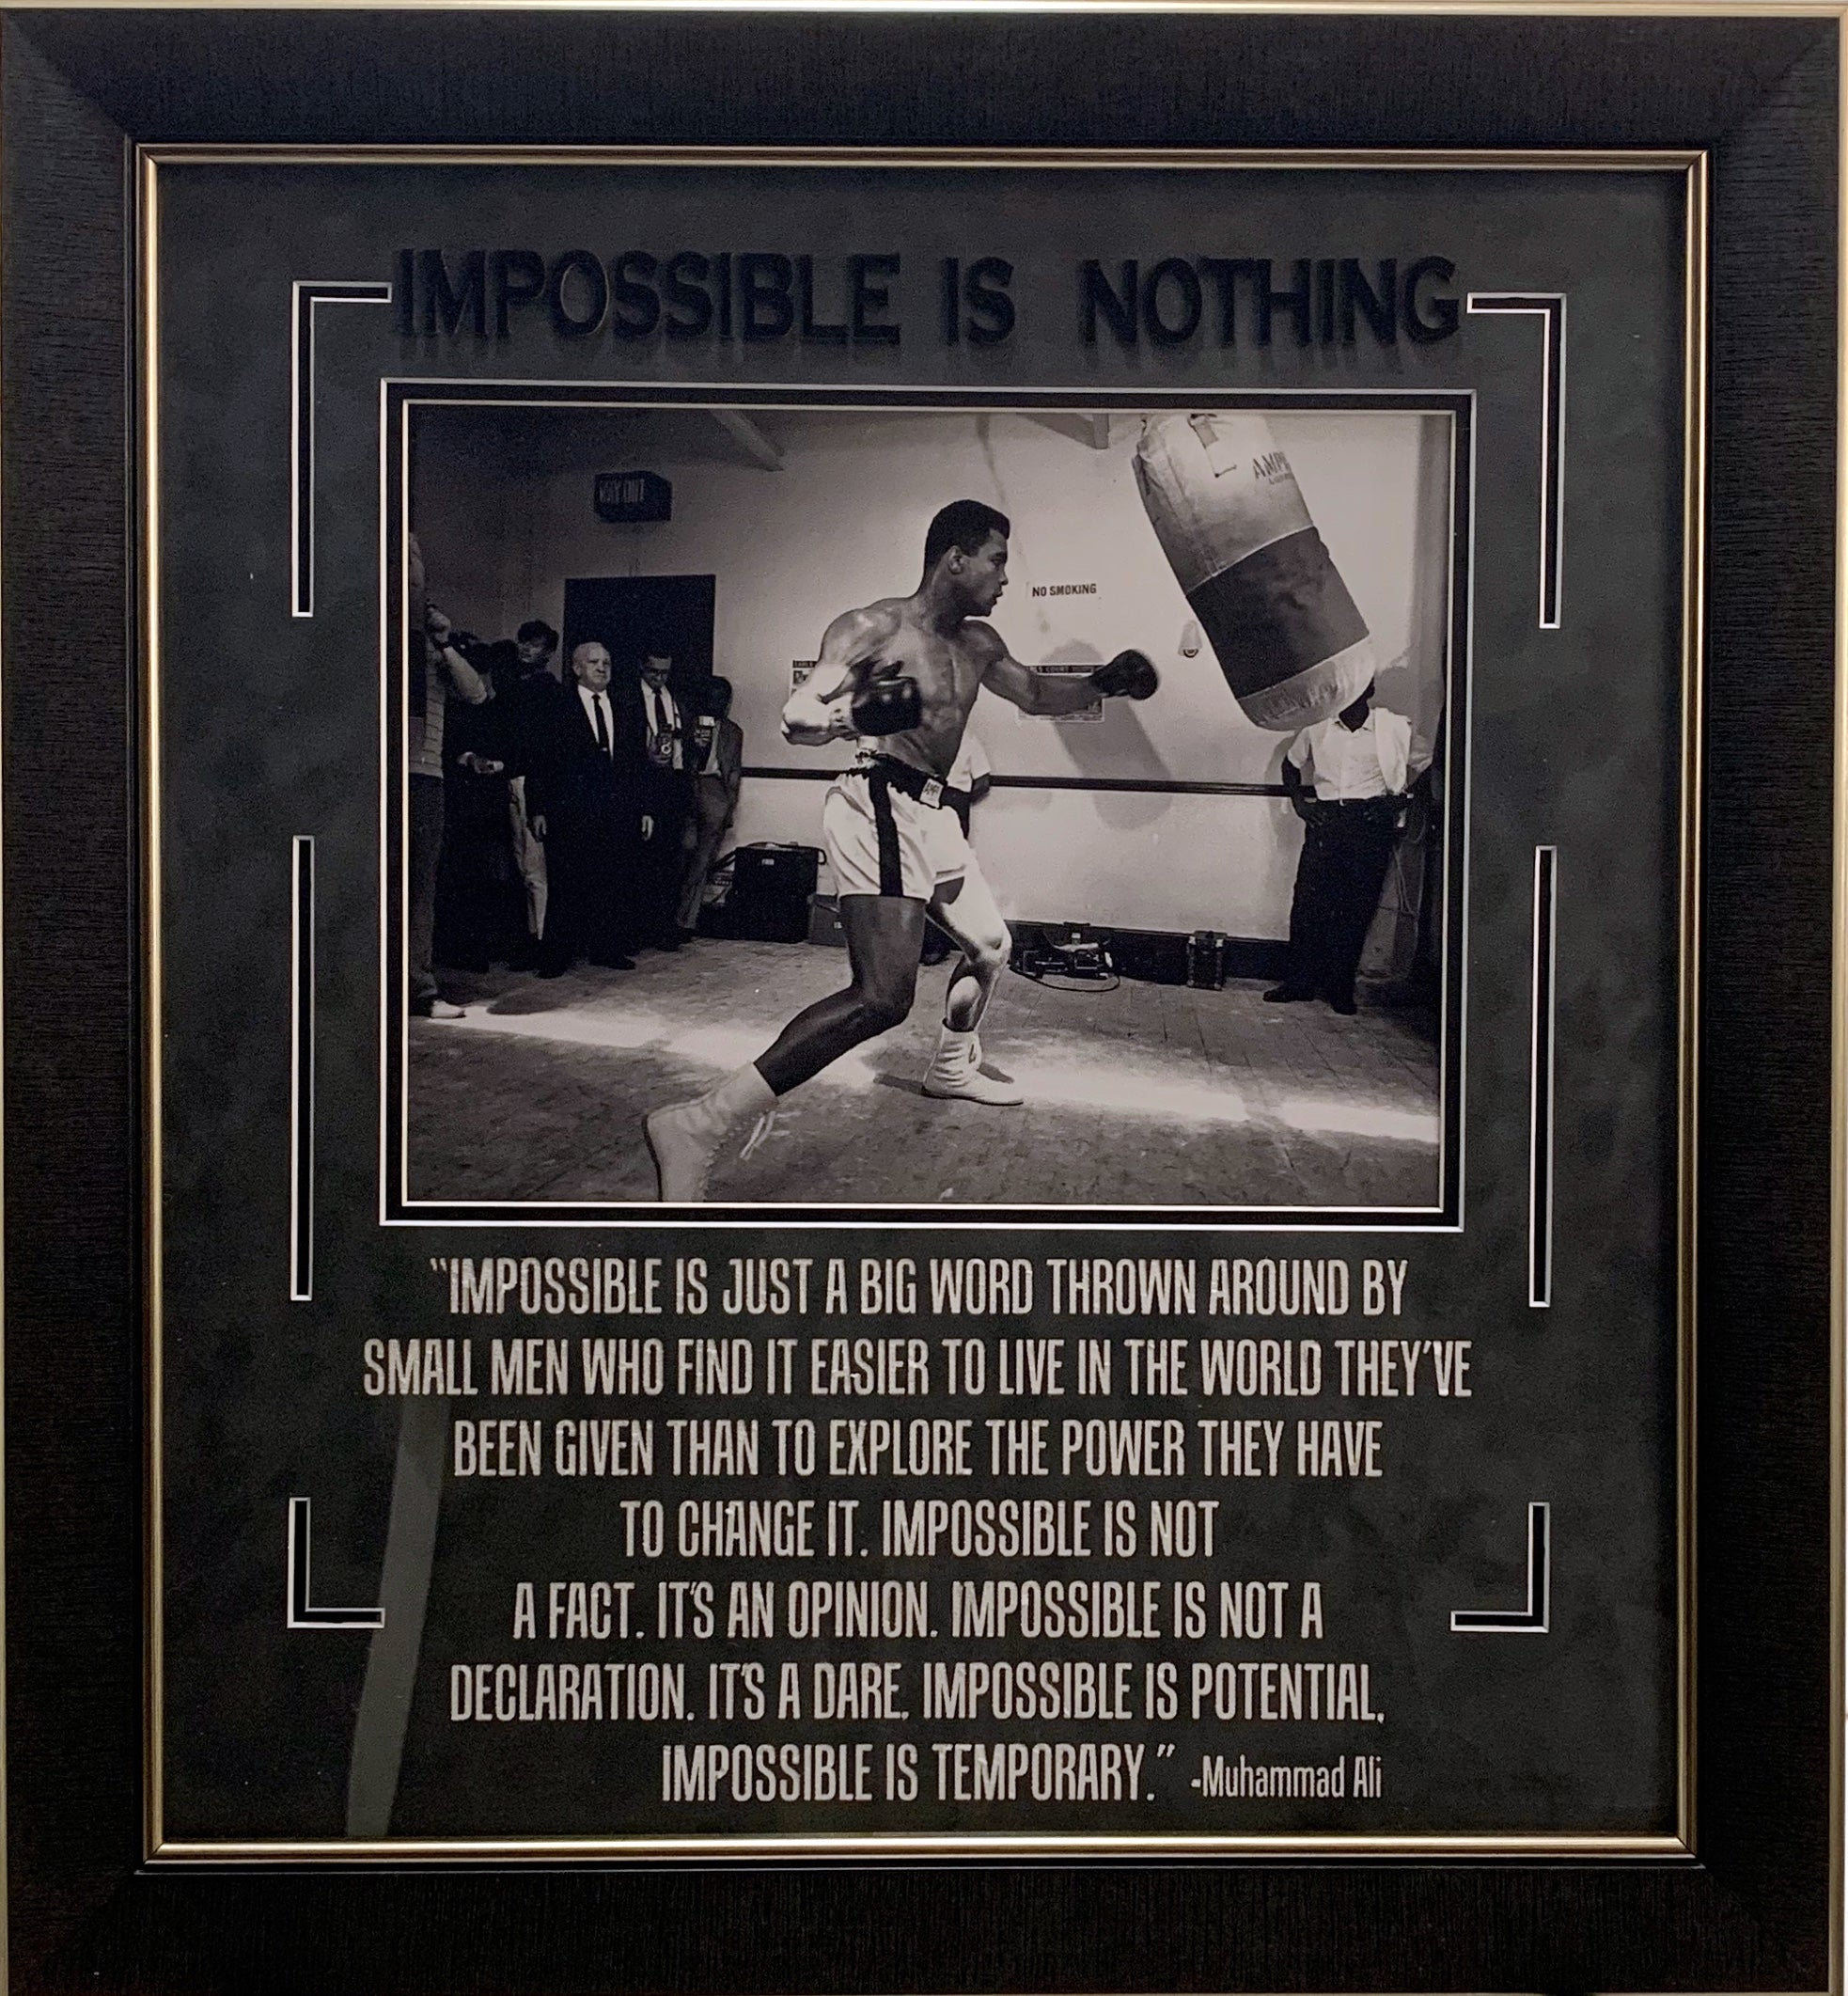 Muhammad Ali - Framed 11x14 Photo w/ Quote - Latitude Sports Marketing